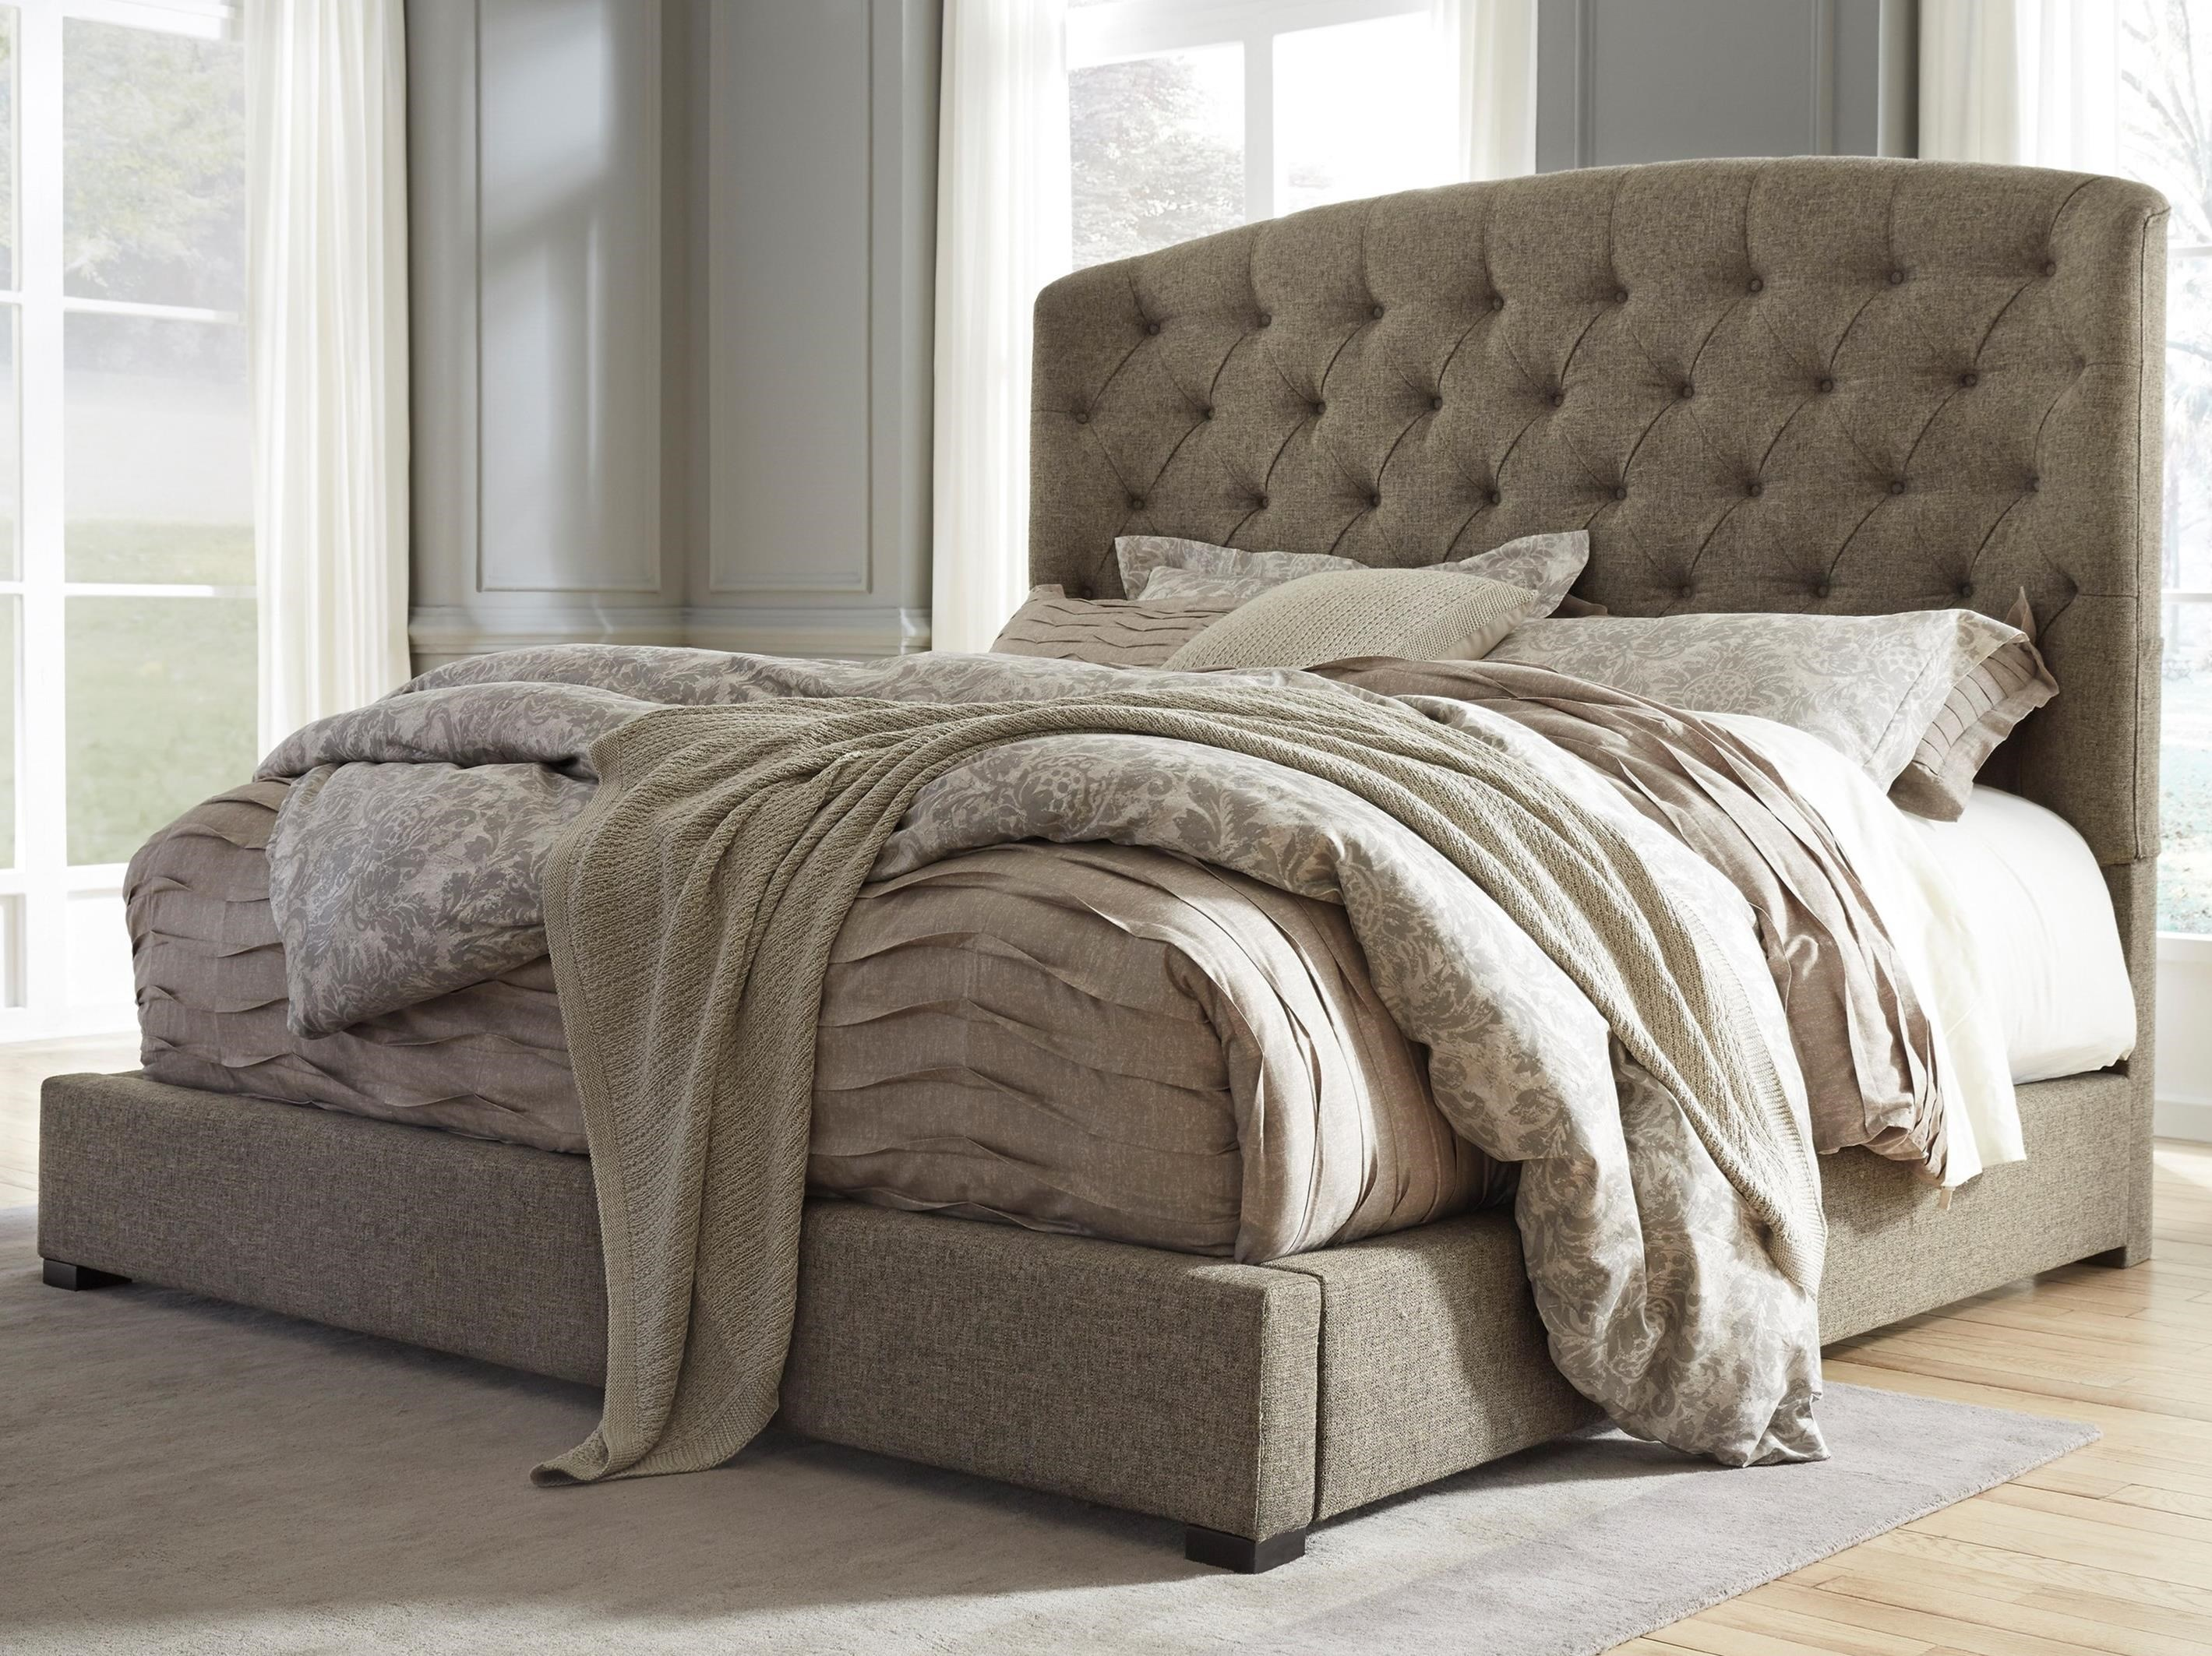 Signature design by ashley gerlane queen upholstered bed with arched tufted headboard and low Home furniture and mattress